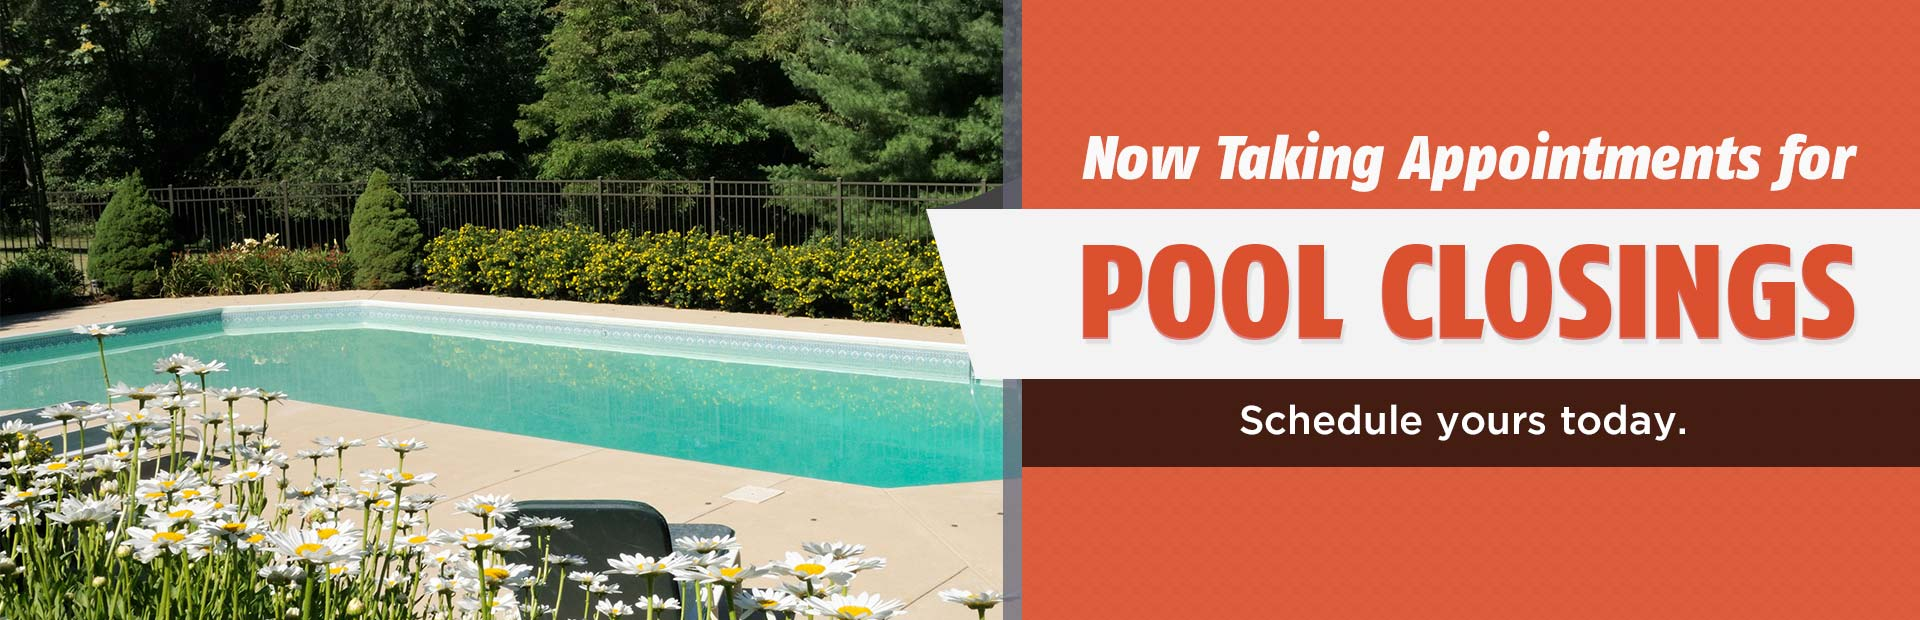 Now Taking Appointments for Pool Closings: Schedule yours today.